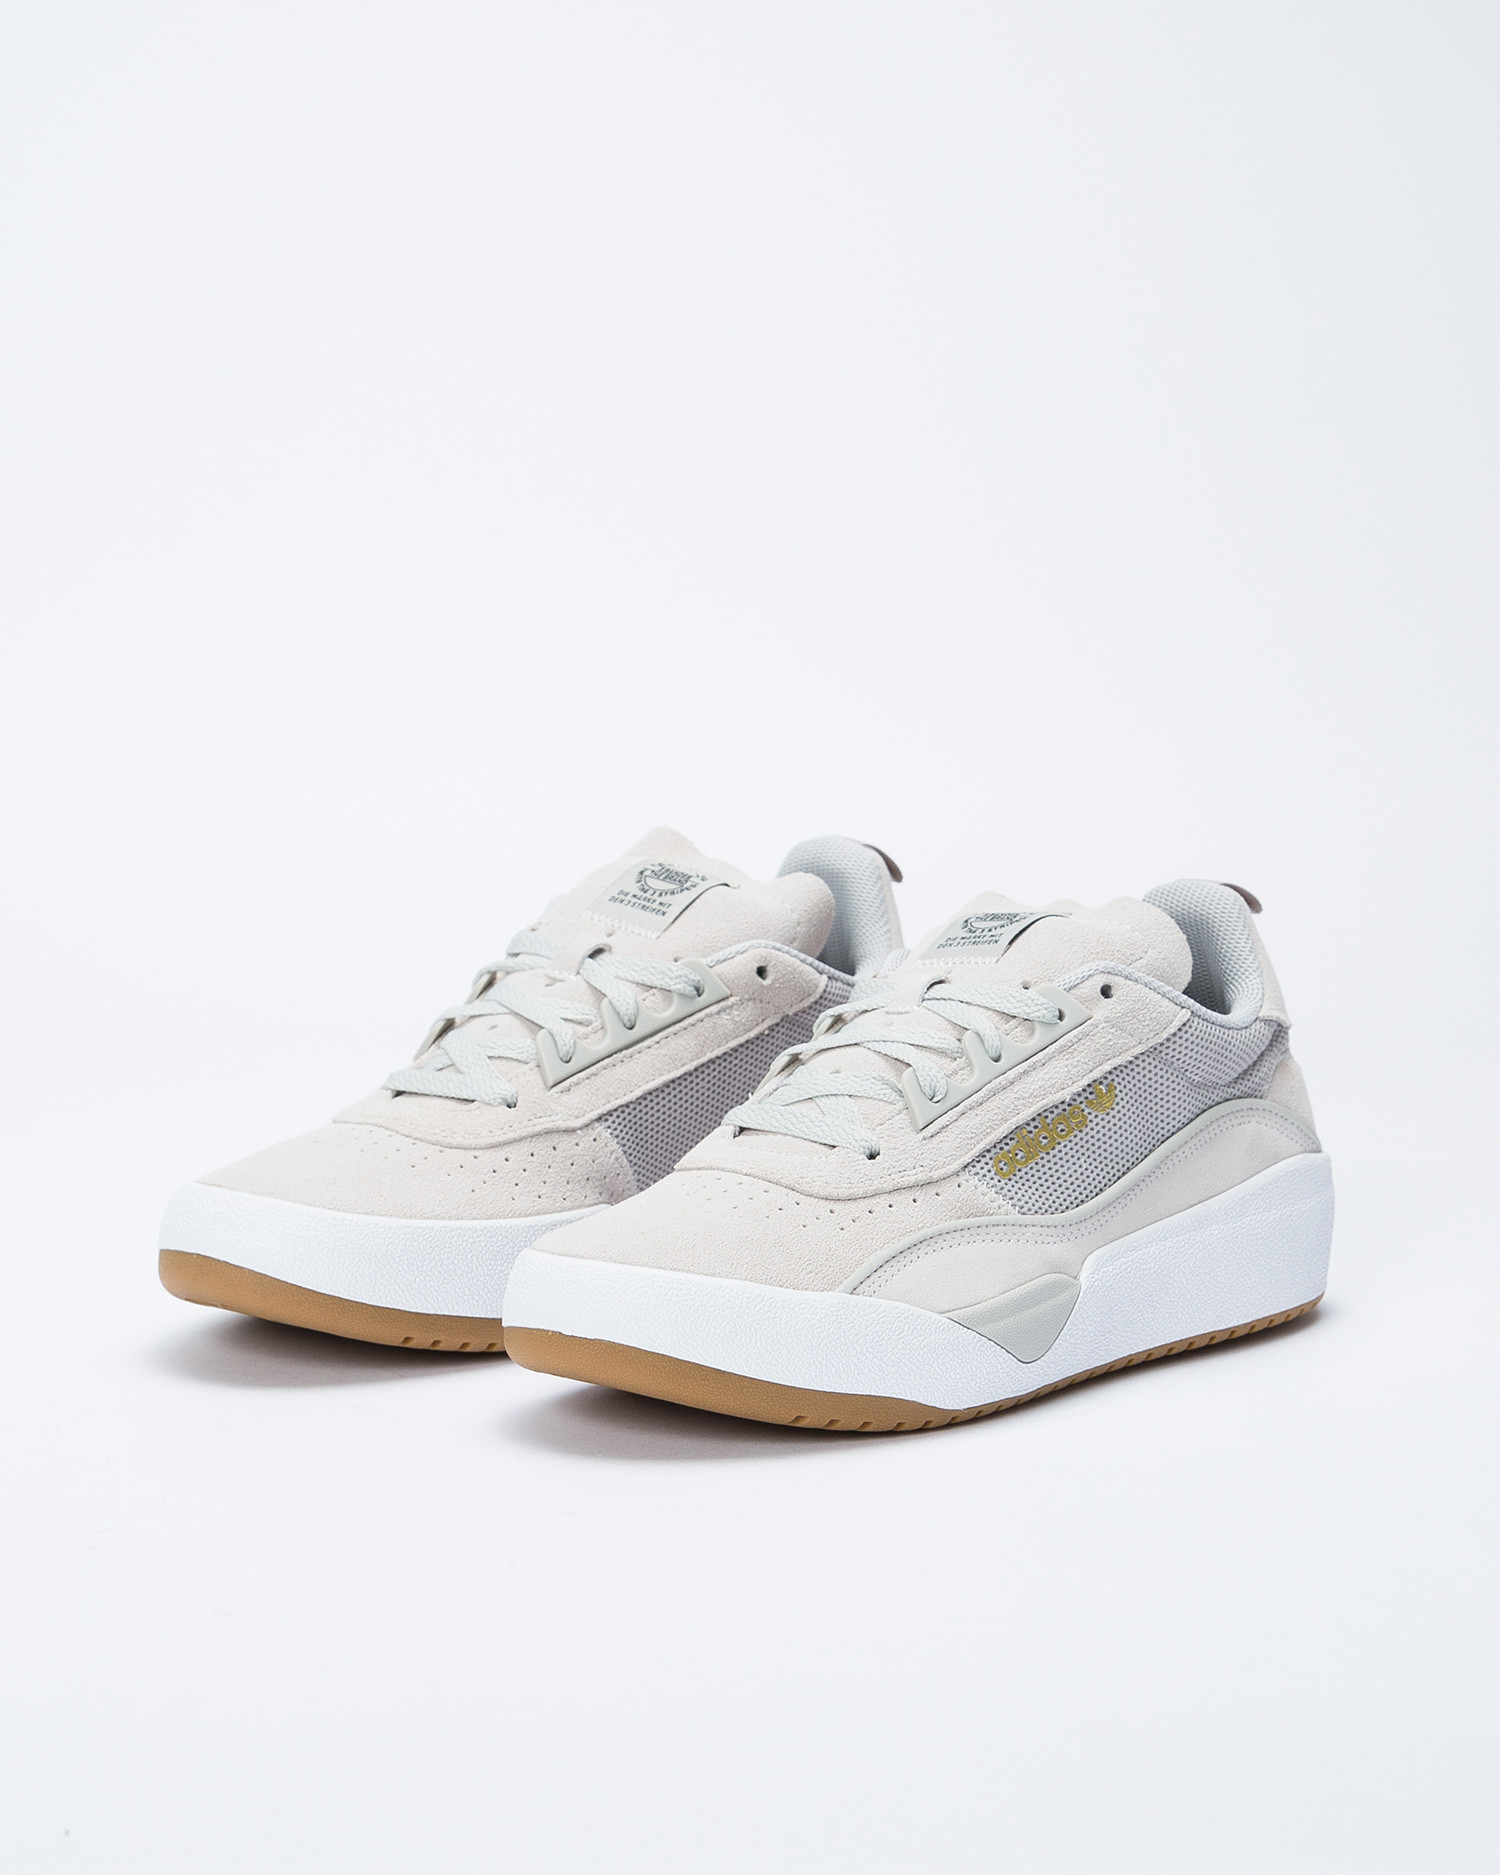 Adidas Liberty Cup Footwear White/Gum4/Gold Metalic